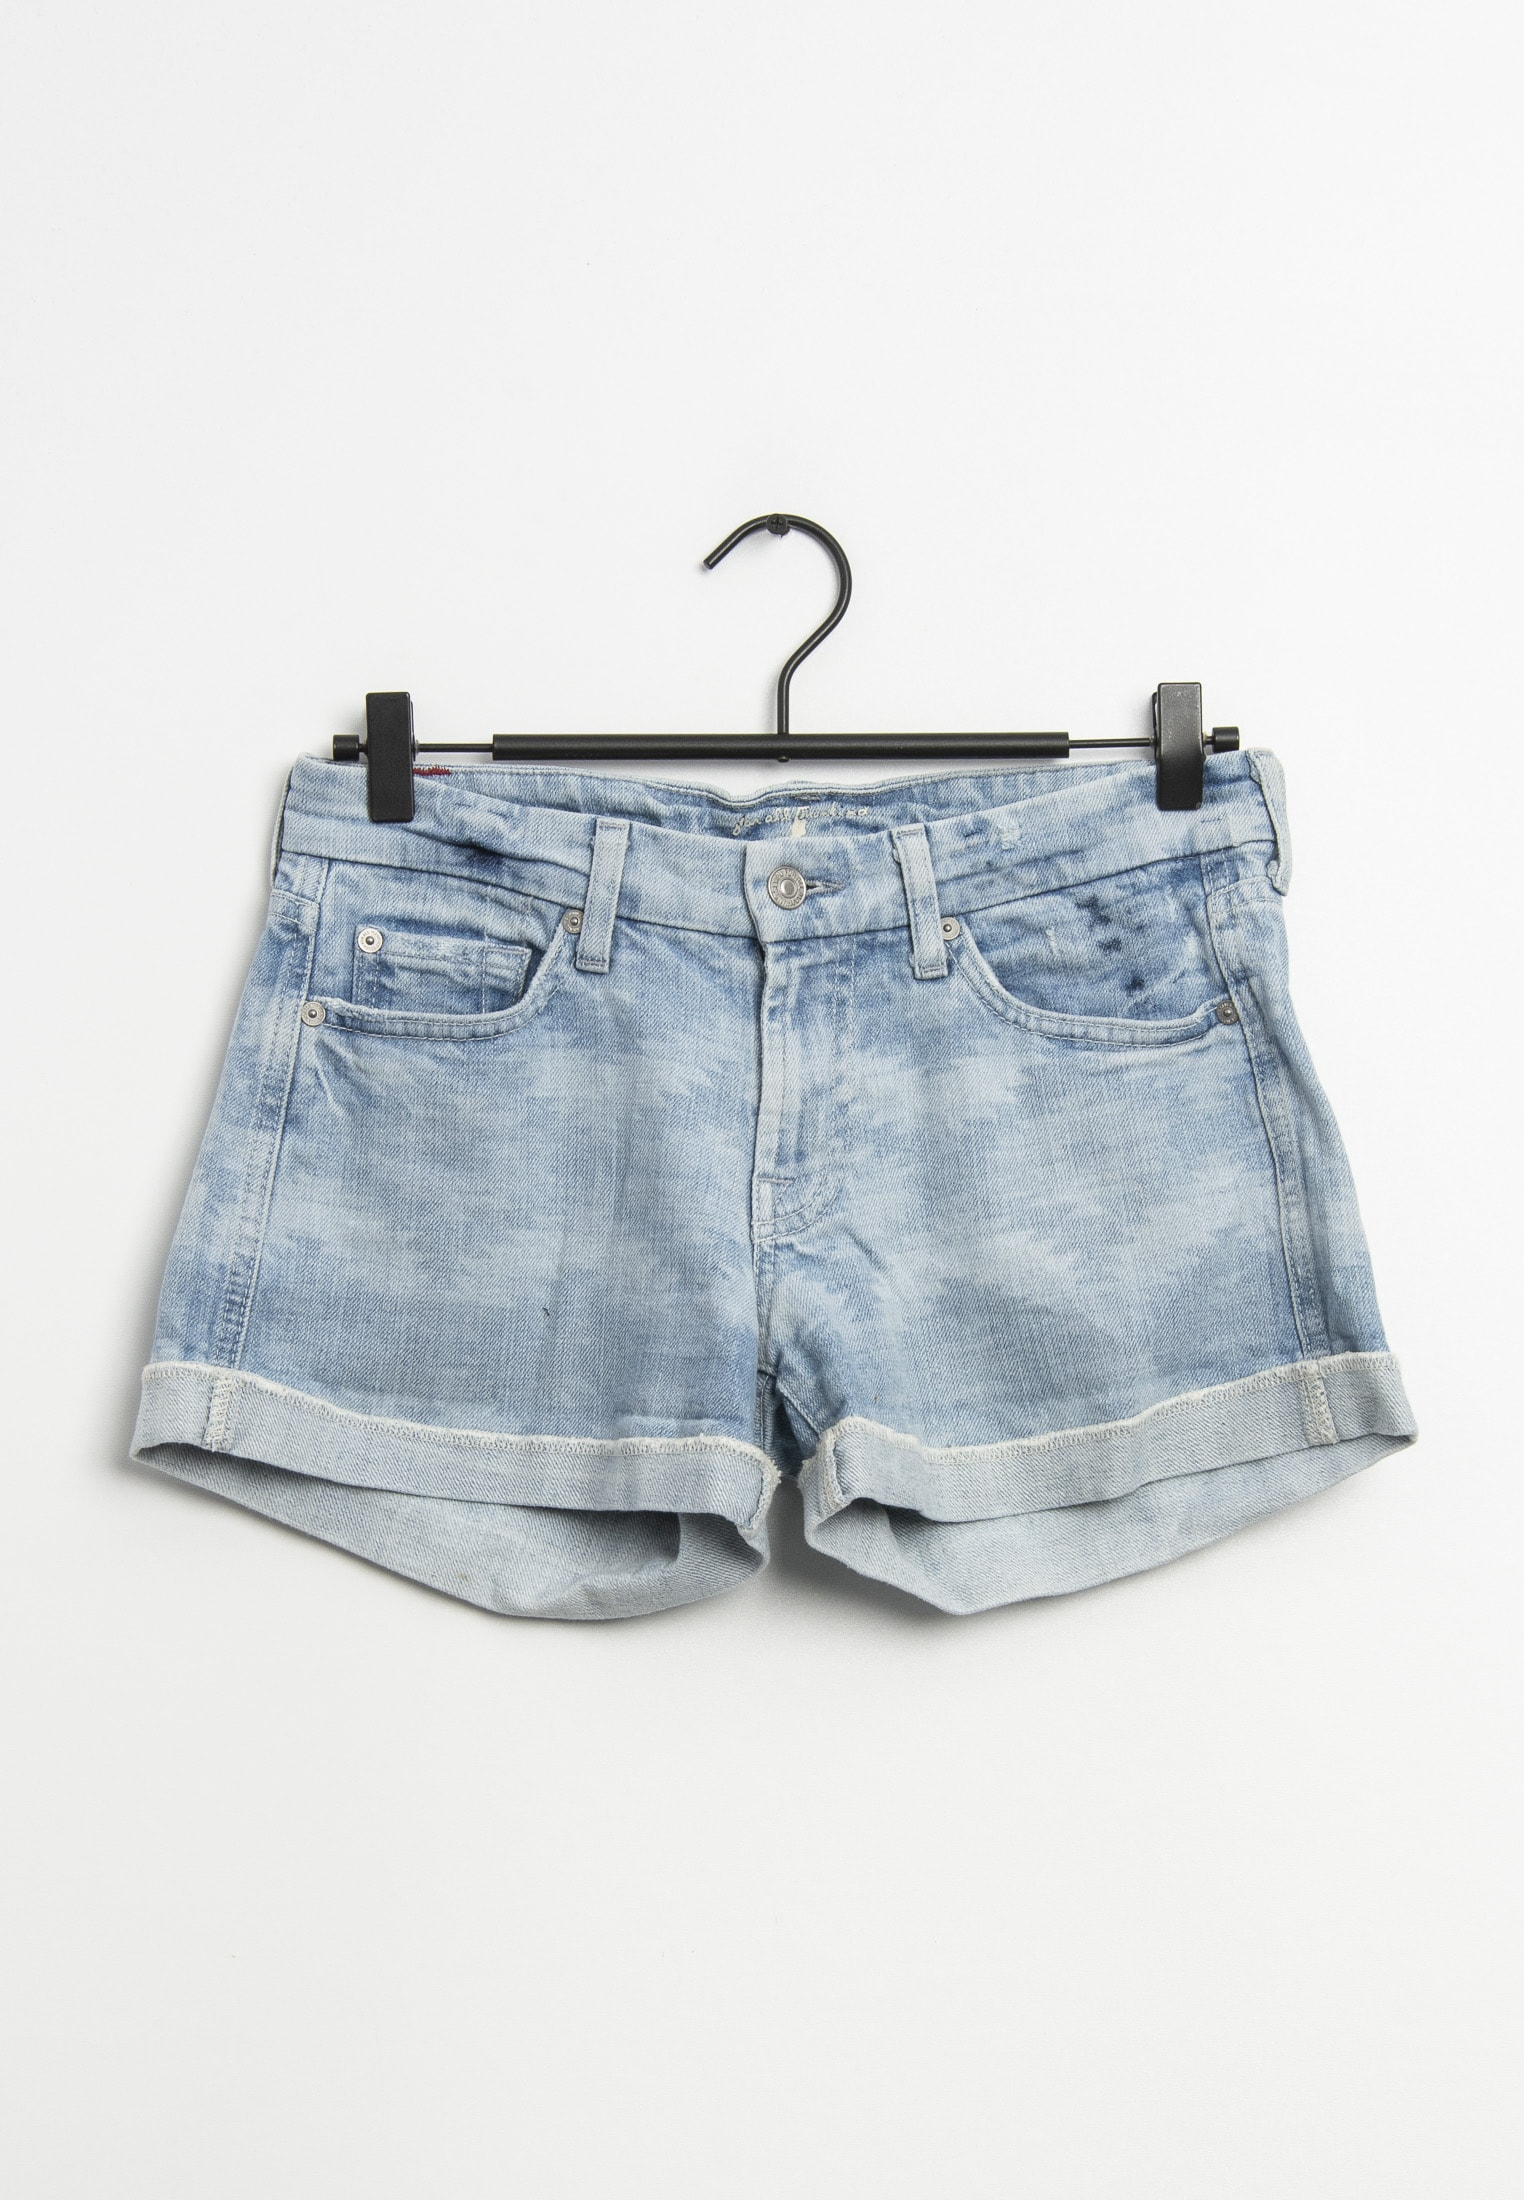 7 for all mankind Shorts Blau Gr.S